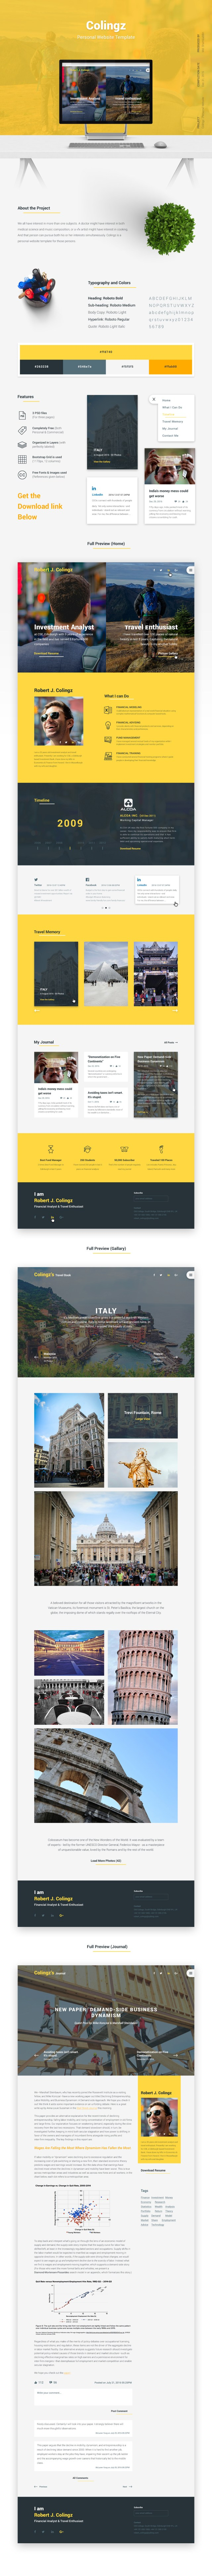 Colingz Personal Website Free Template